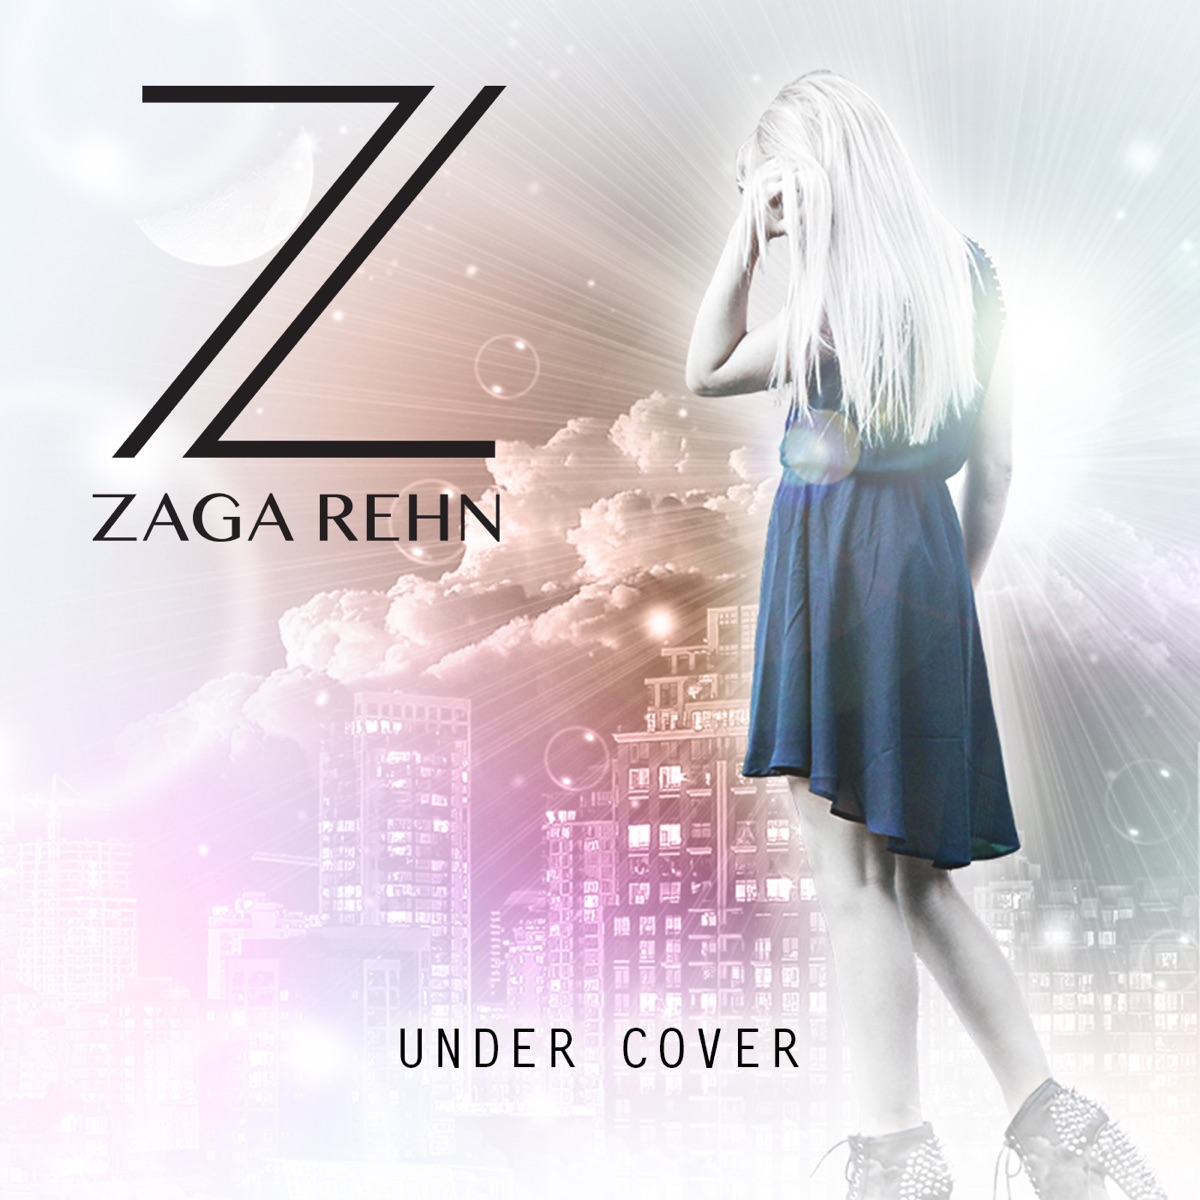 Under Cover Zaga Rehn CD cover